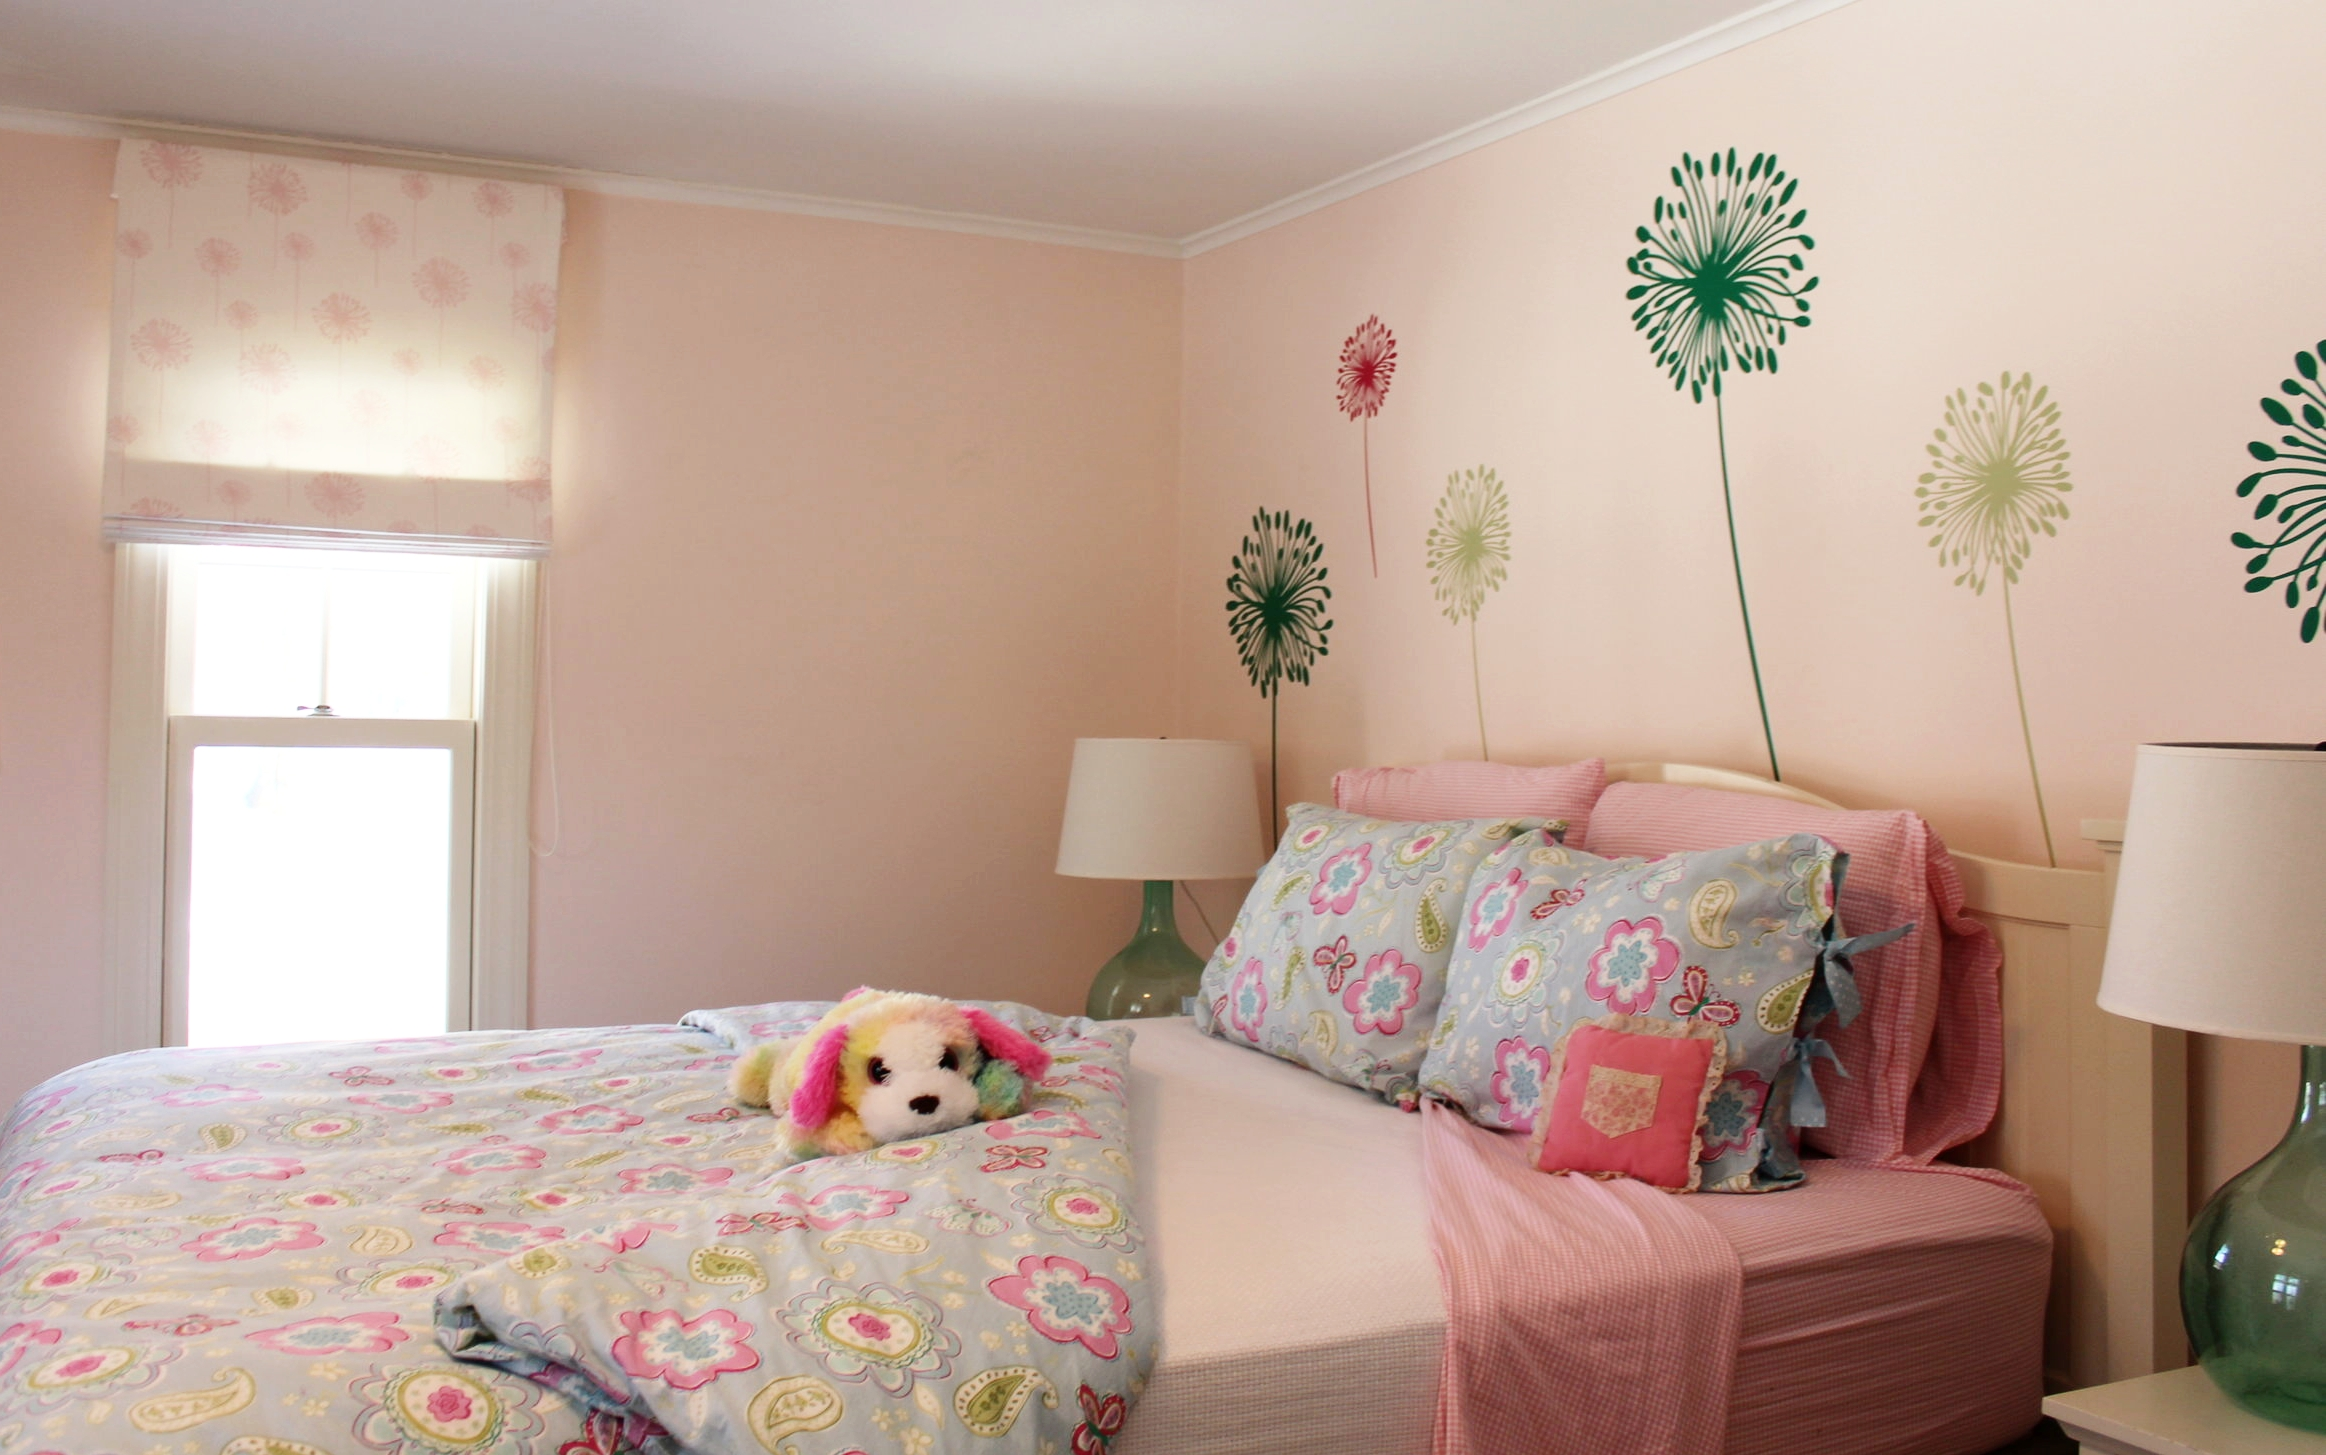 We decorated this room for a 2nd grade girl.  The dandelions on the wall are custom, and can be re-positioned or removed very easily.  They mimic the dandelions in the shade fabric ( Duralee  Fabric).  With a few tweaks (stuffed animals) this room can easily take this young lady through her middle school years.